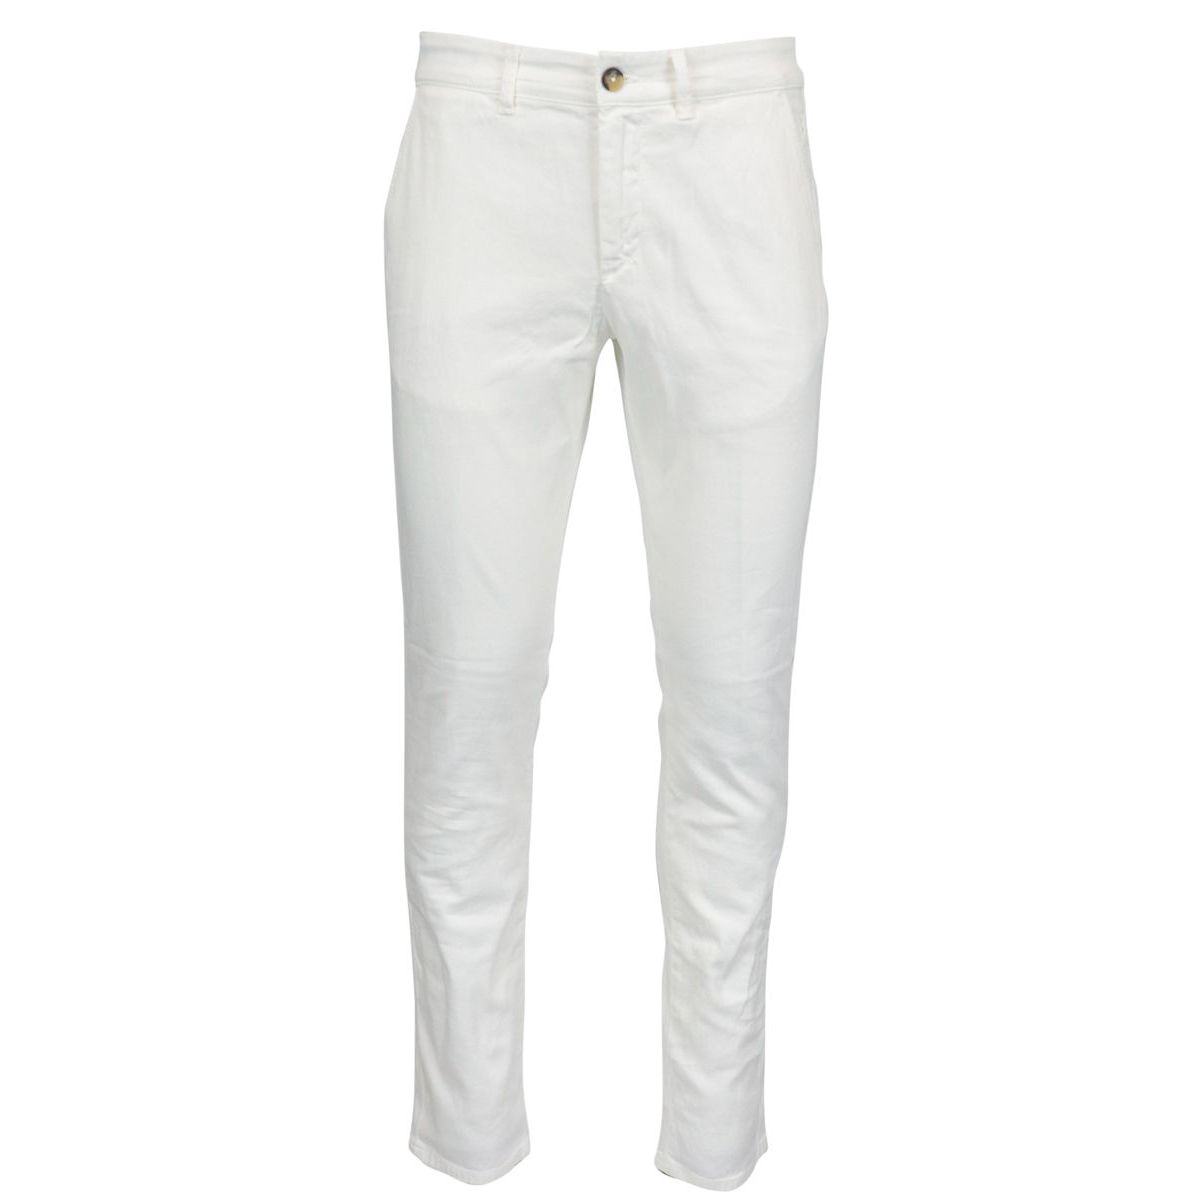 Armored cotton trousers with america pocket Optical white Jeckerson